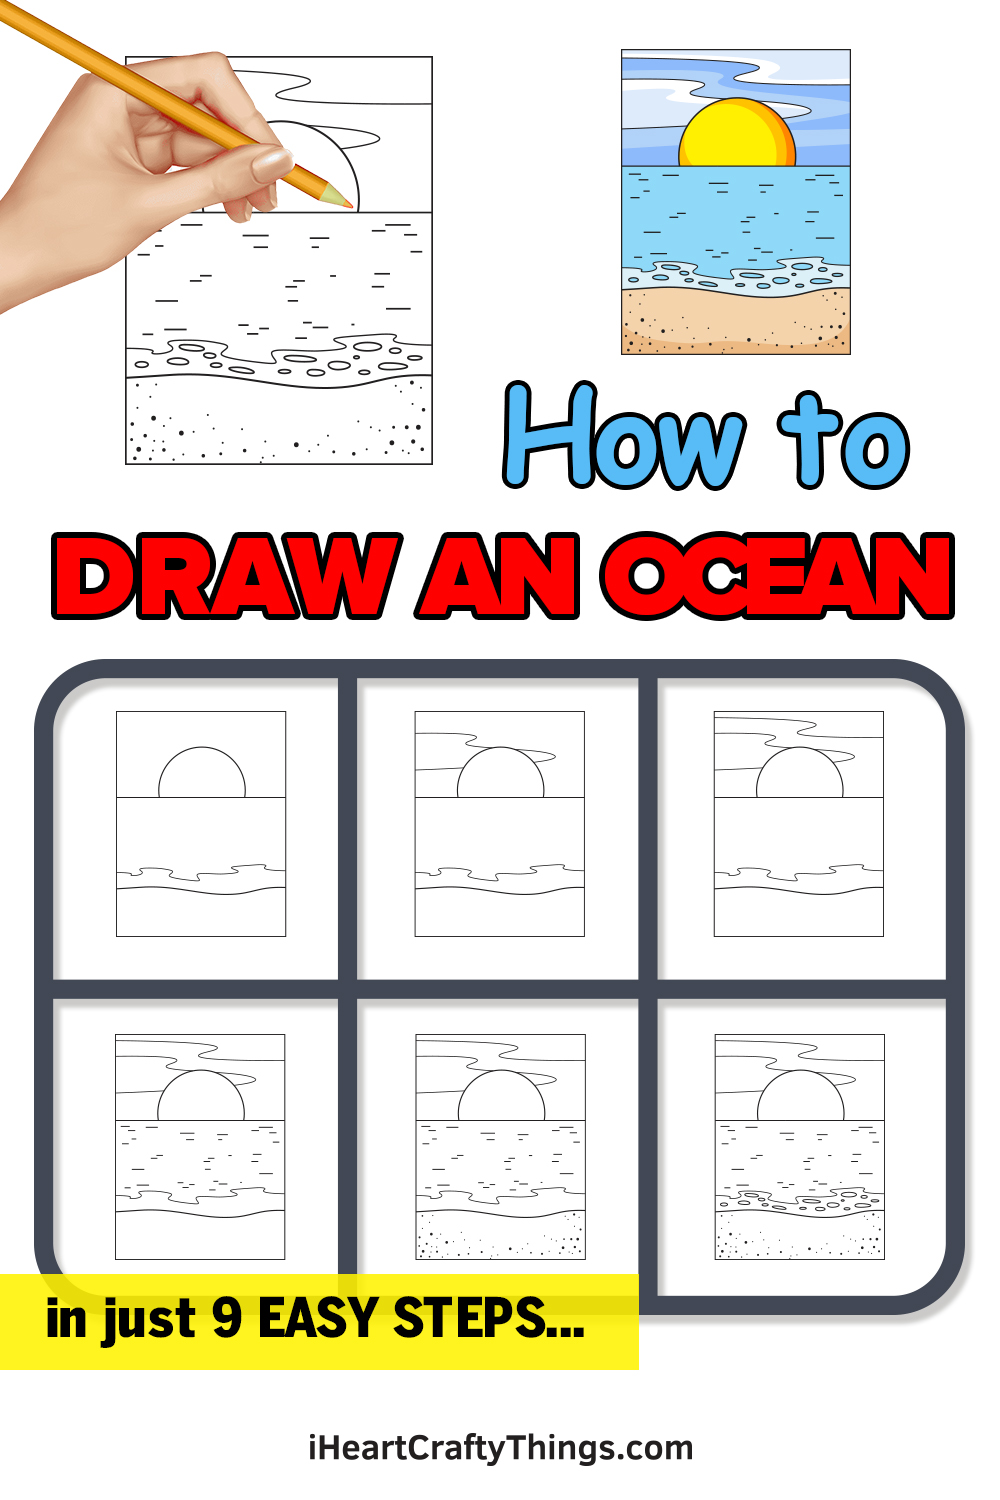 how to draw an ocean in 9 easy steps